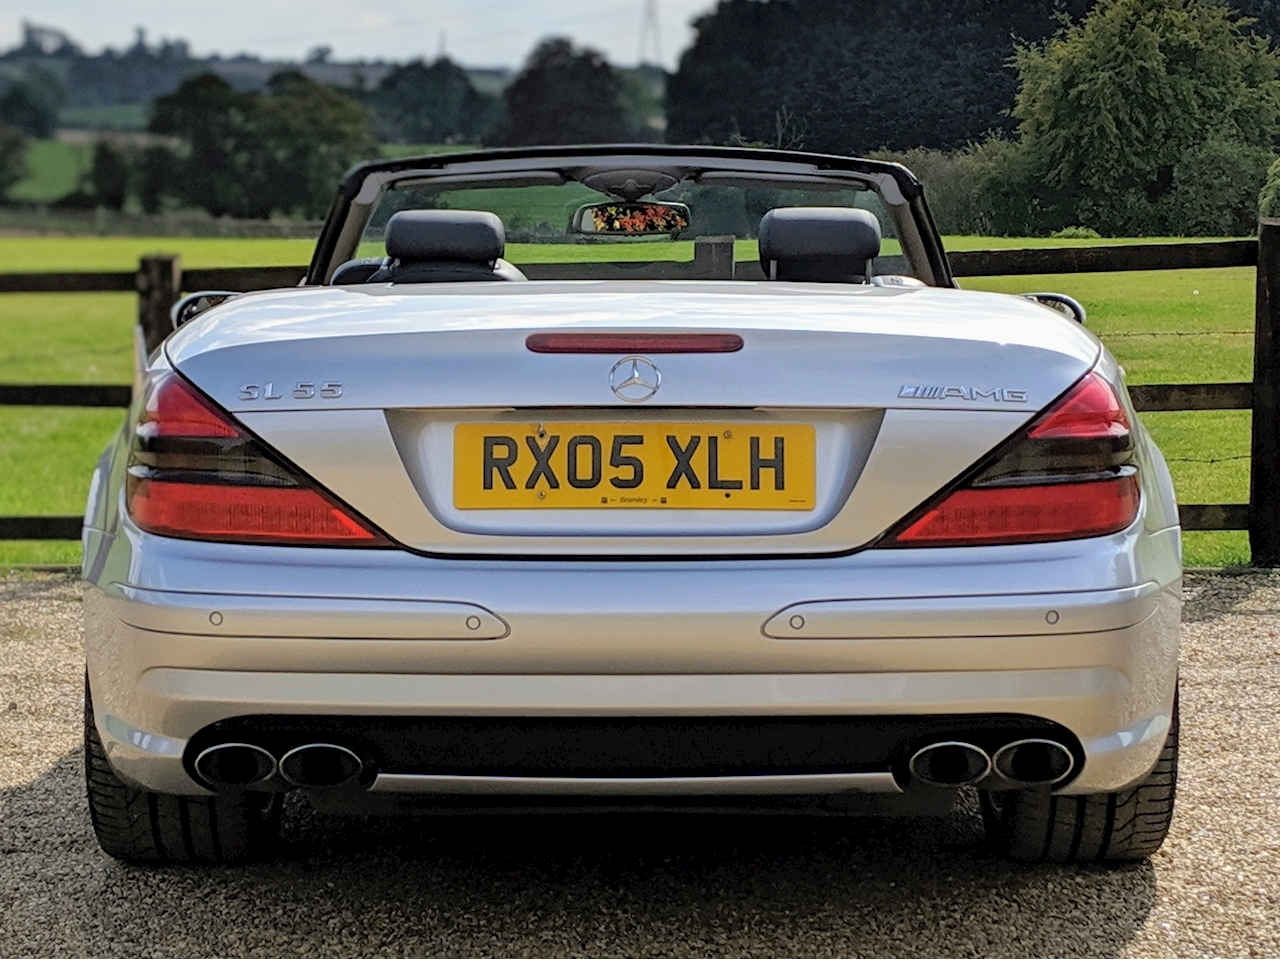 Mercedes-Benz Sl Sl 55 Amg Kompressor - Large 5